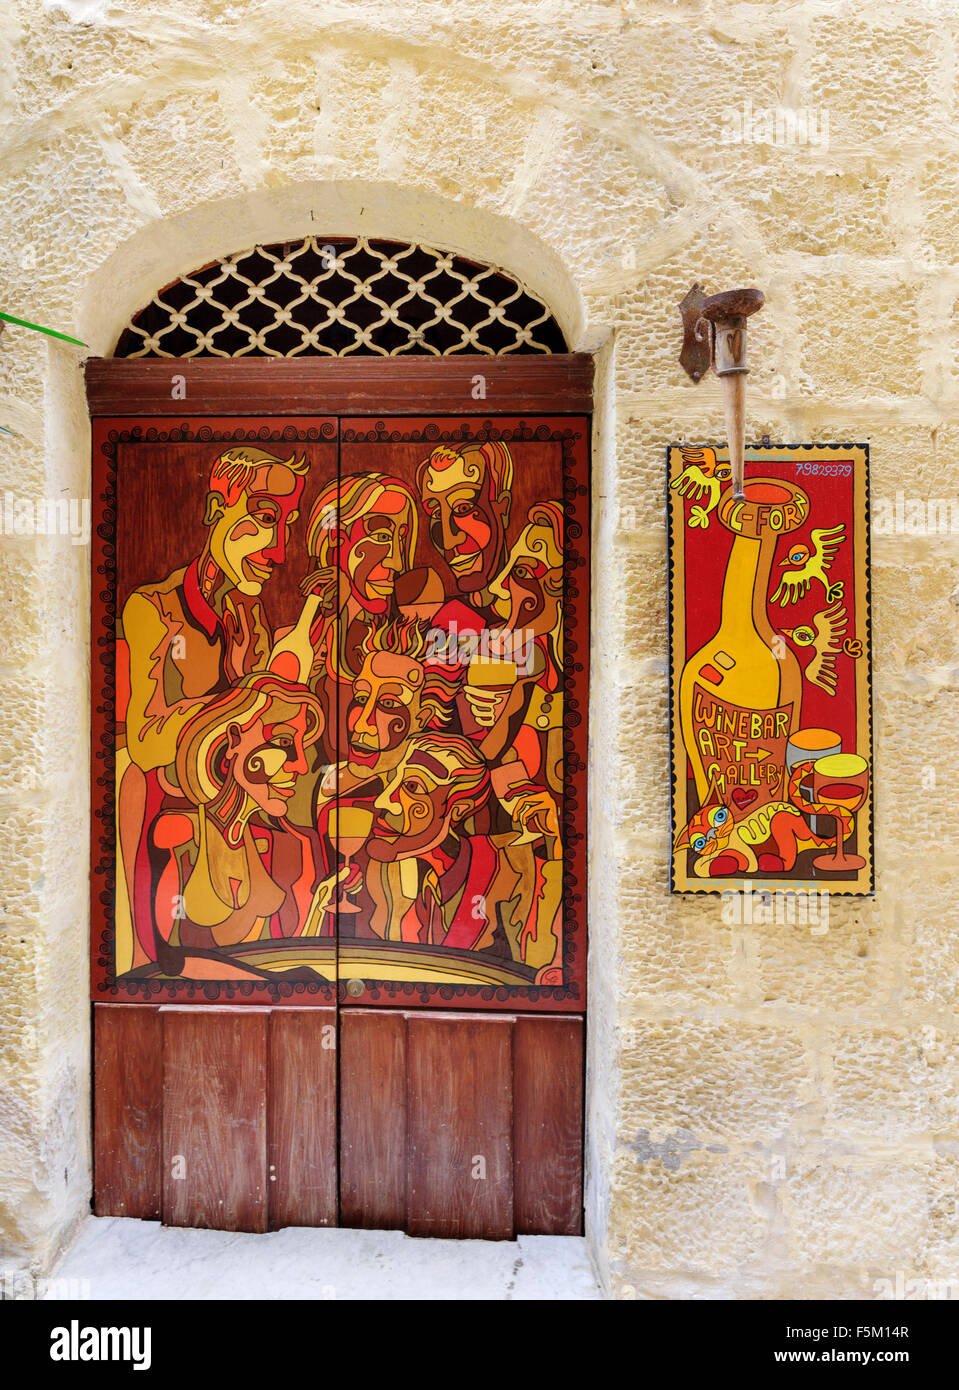 Il-Forn Art Gallery & Wine Bar - Stock Image